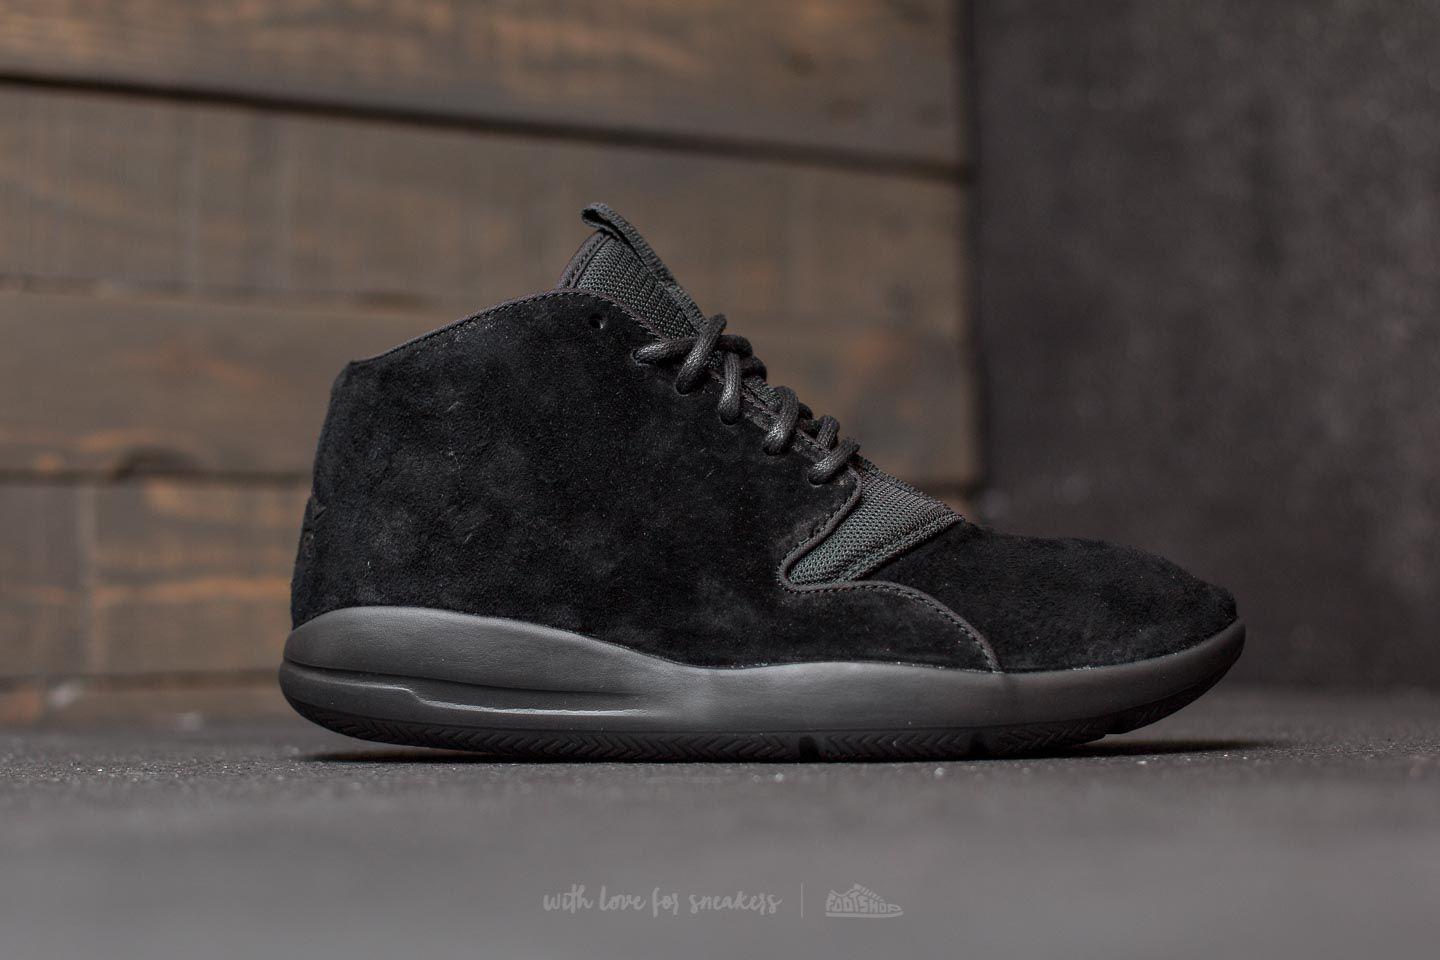 8636044c7a375e ... mens shoes aa1274 010 f06d4 c8cf7  netherlands jordan eclipse chukka  leather black black at a great price 89 buy at footshop b6e06